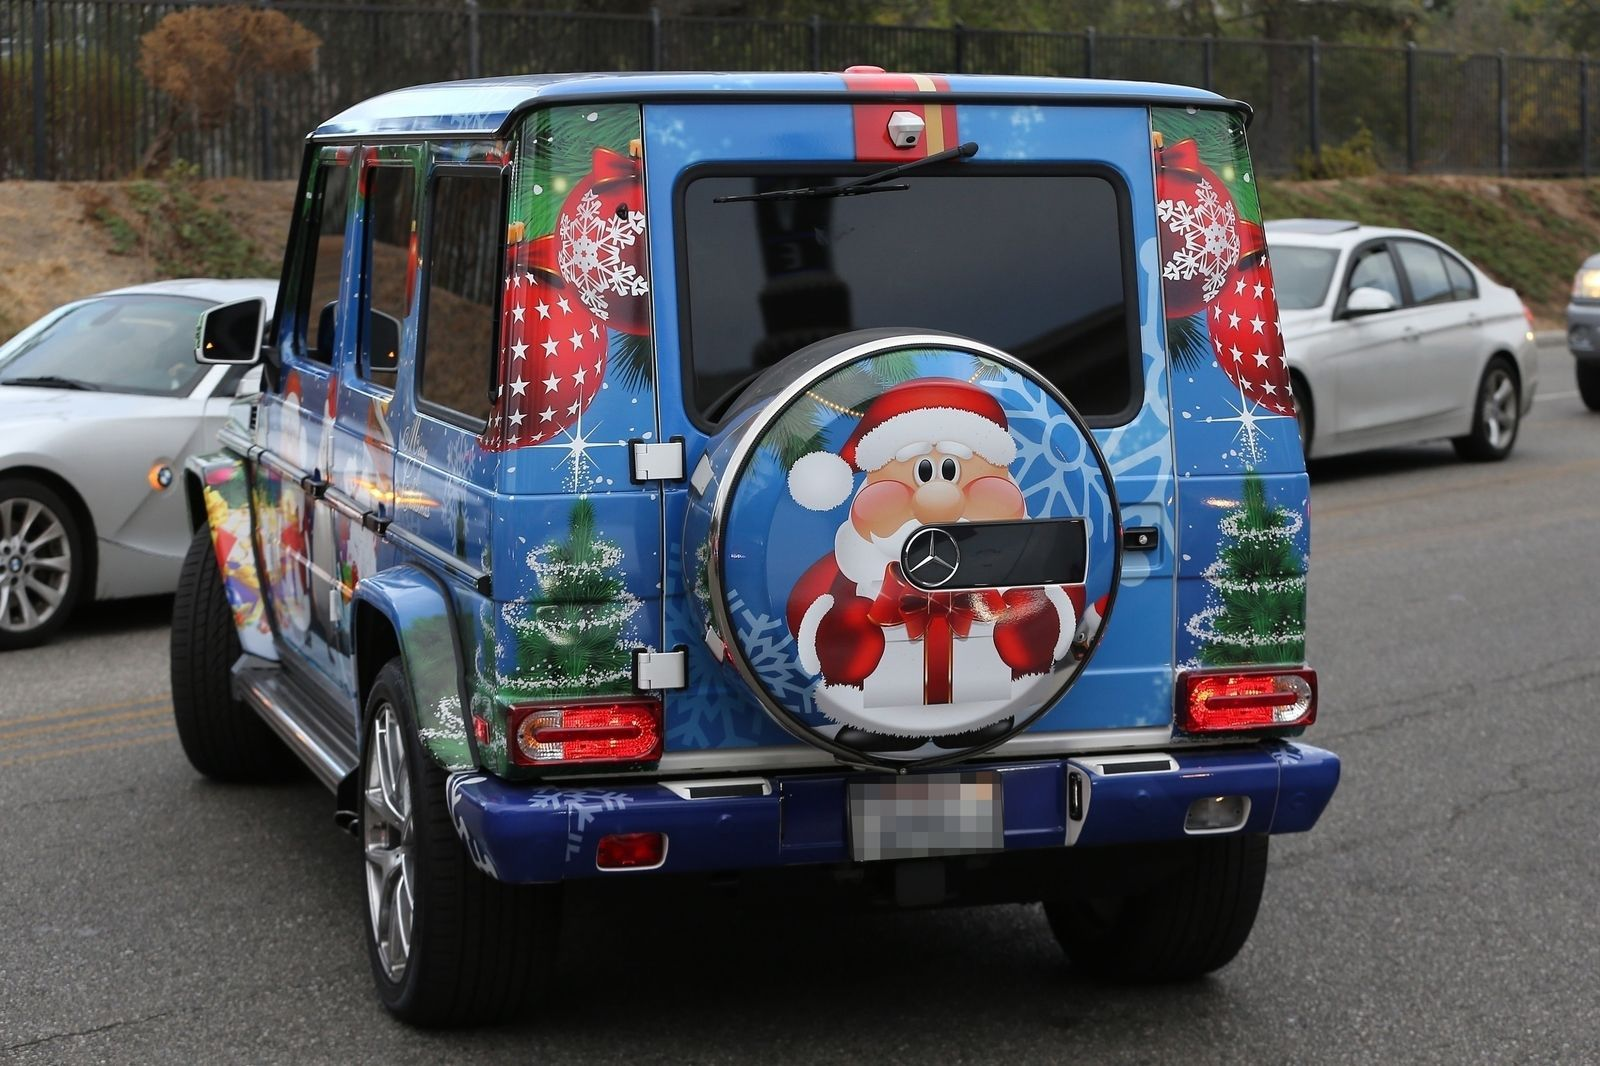 All I Want For Christmas Is Justin Bieber S Christmas Car Justin Bieber Christmas Christmas Car Justin Bieber